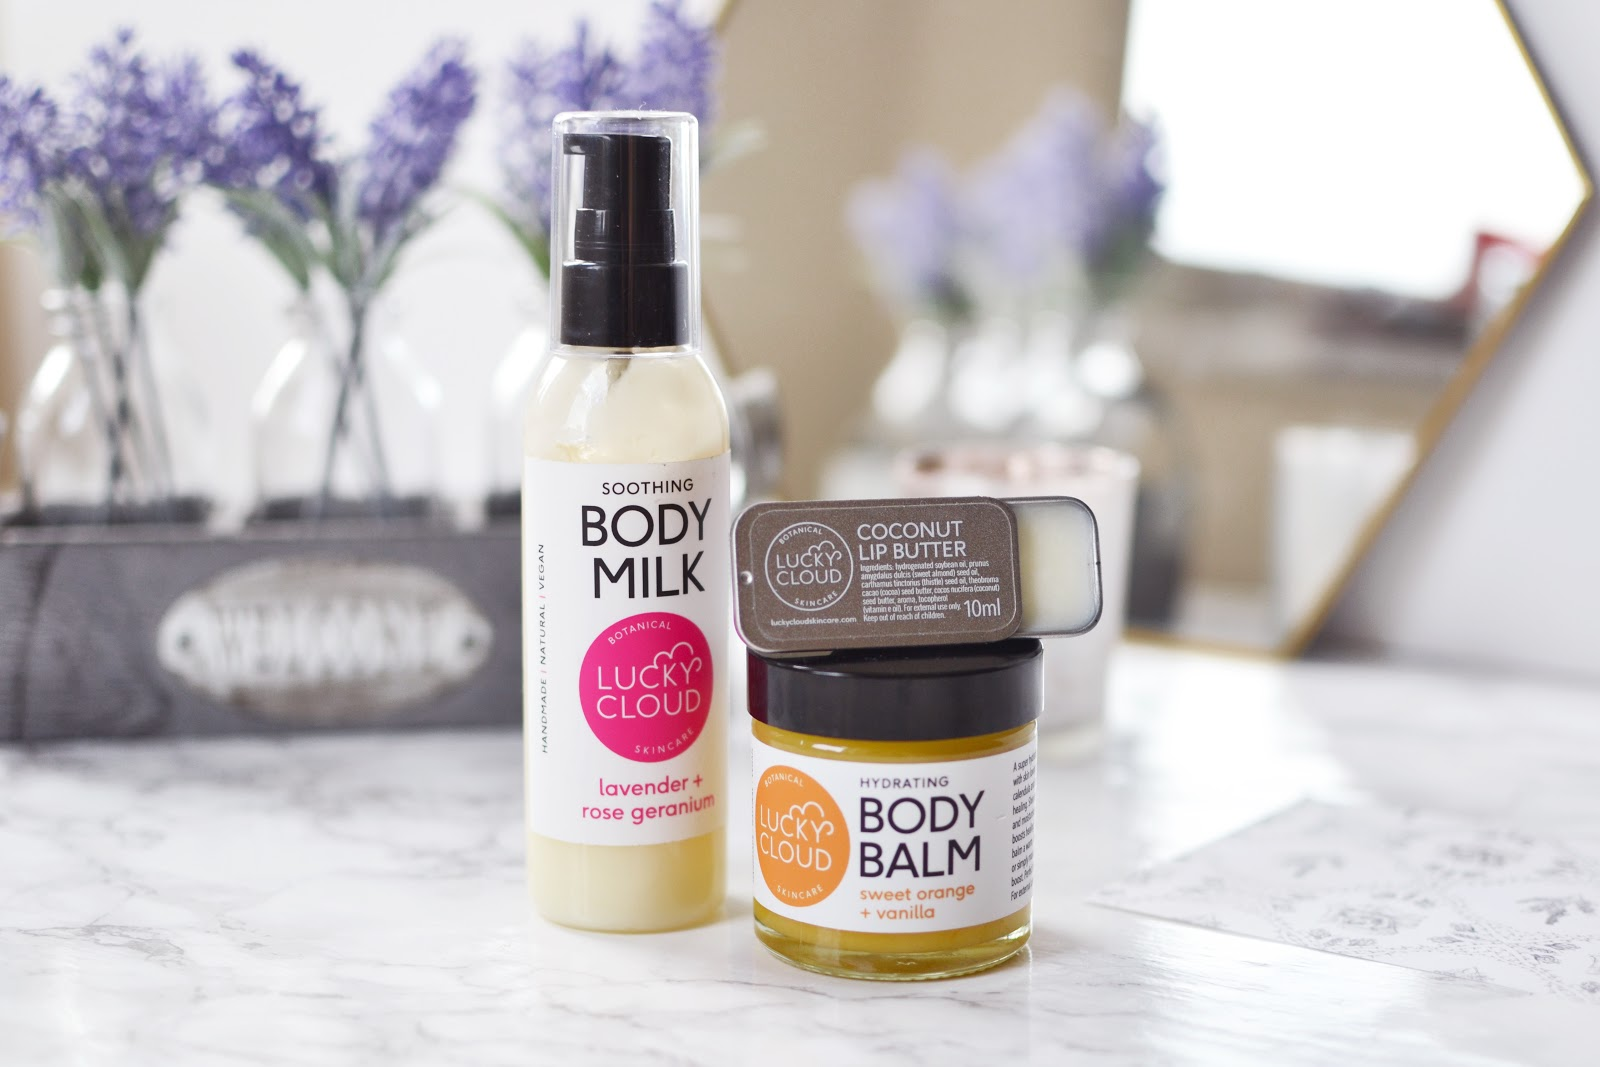 Lucky Cloud Soothing Body Milk